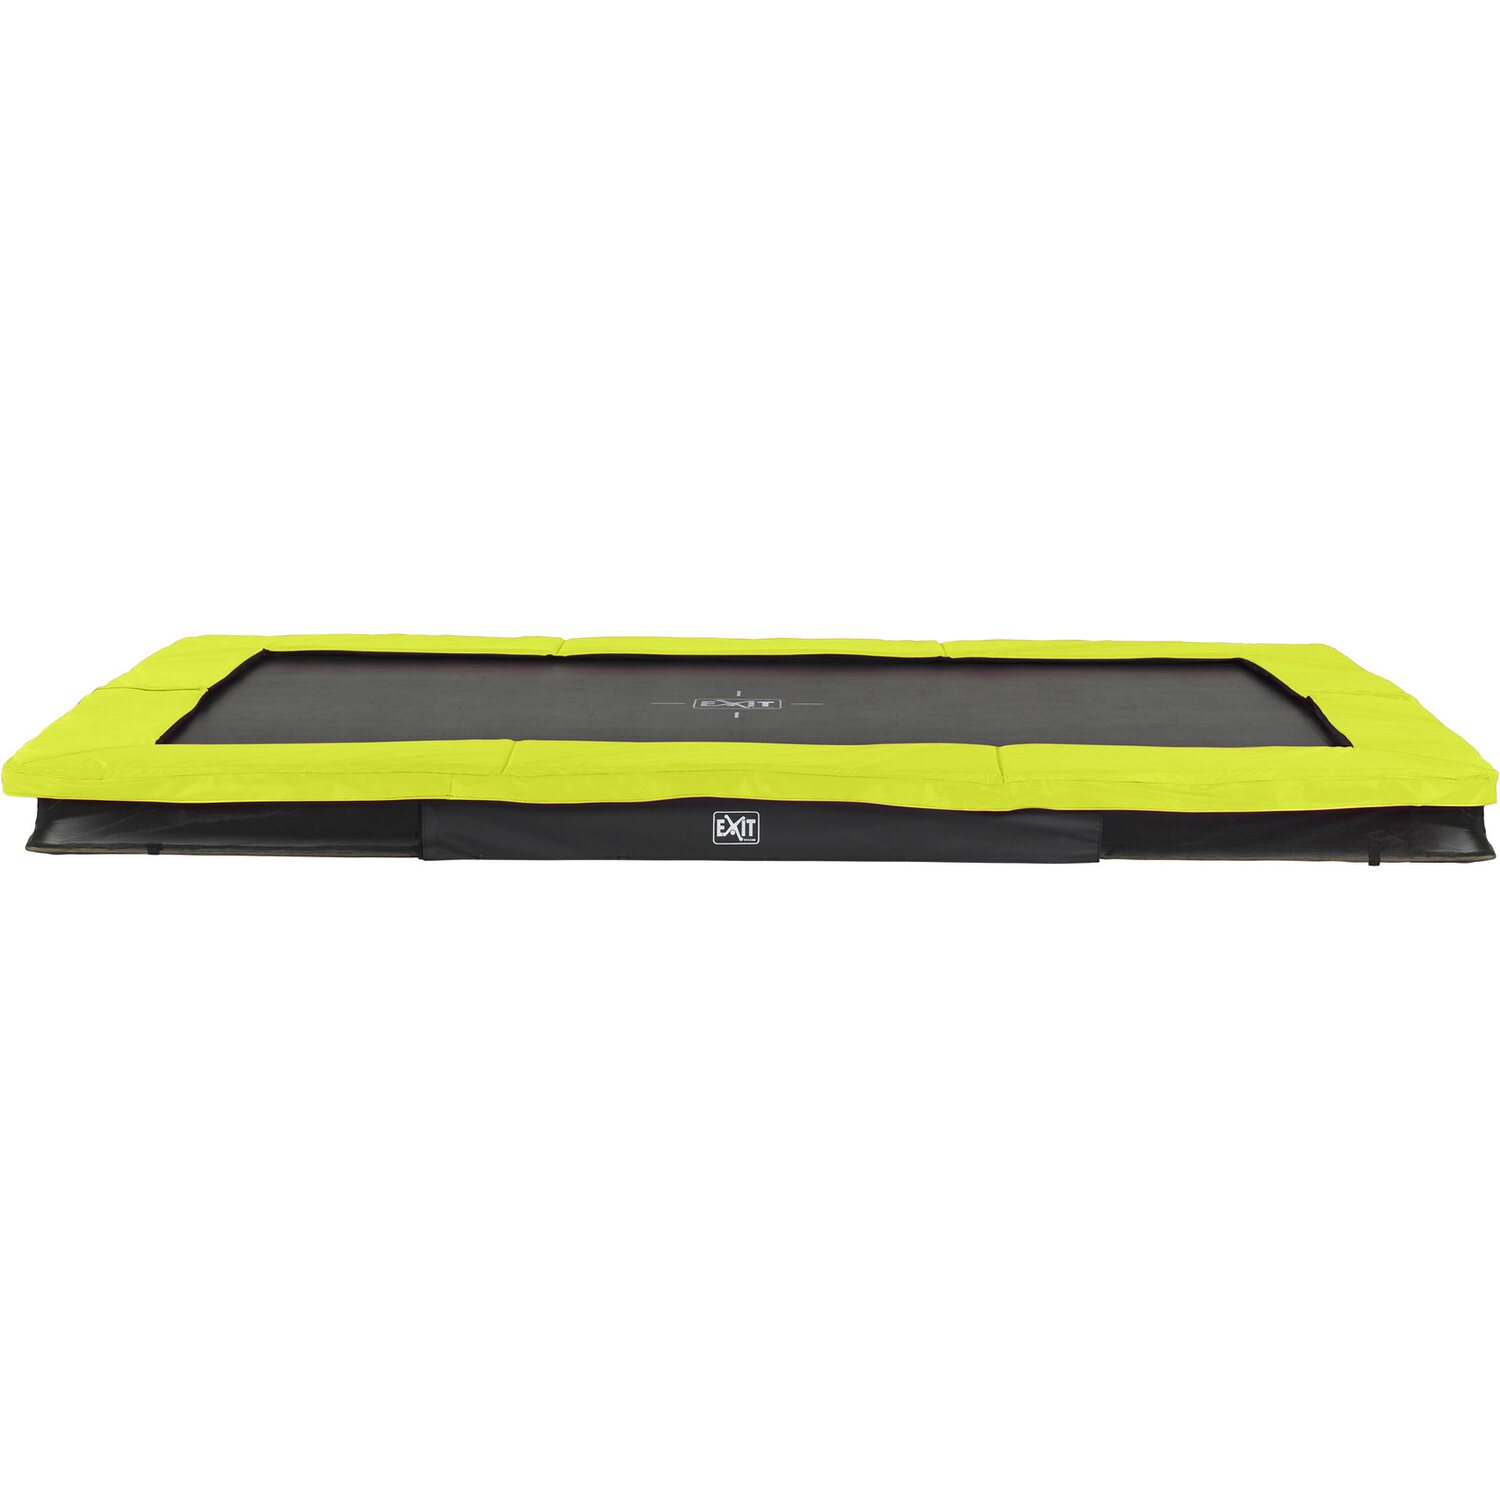 Exit Bodentrampolin Silhouette Eckig 214 cm x 3...